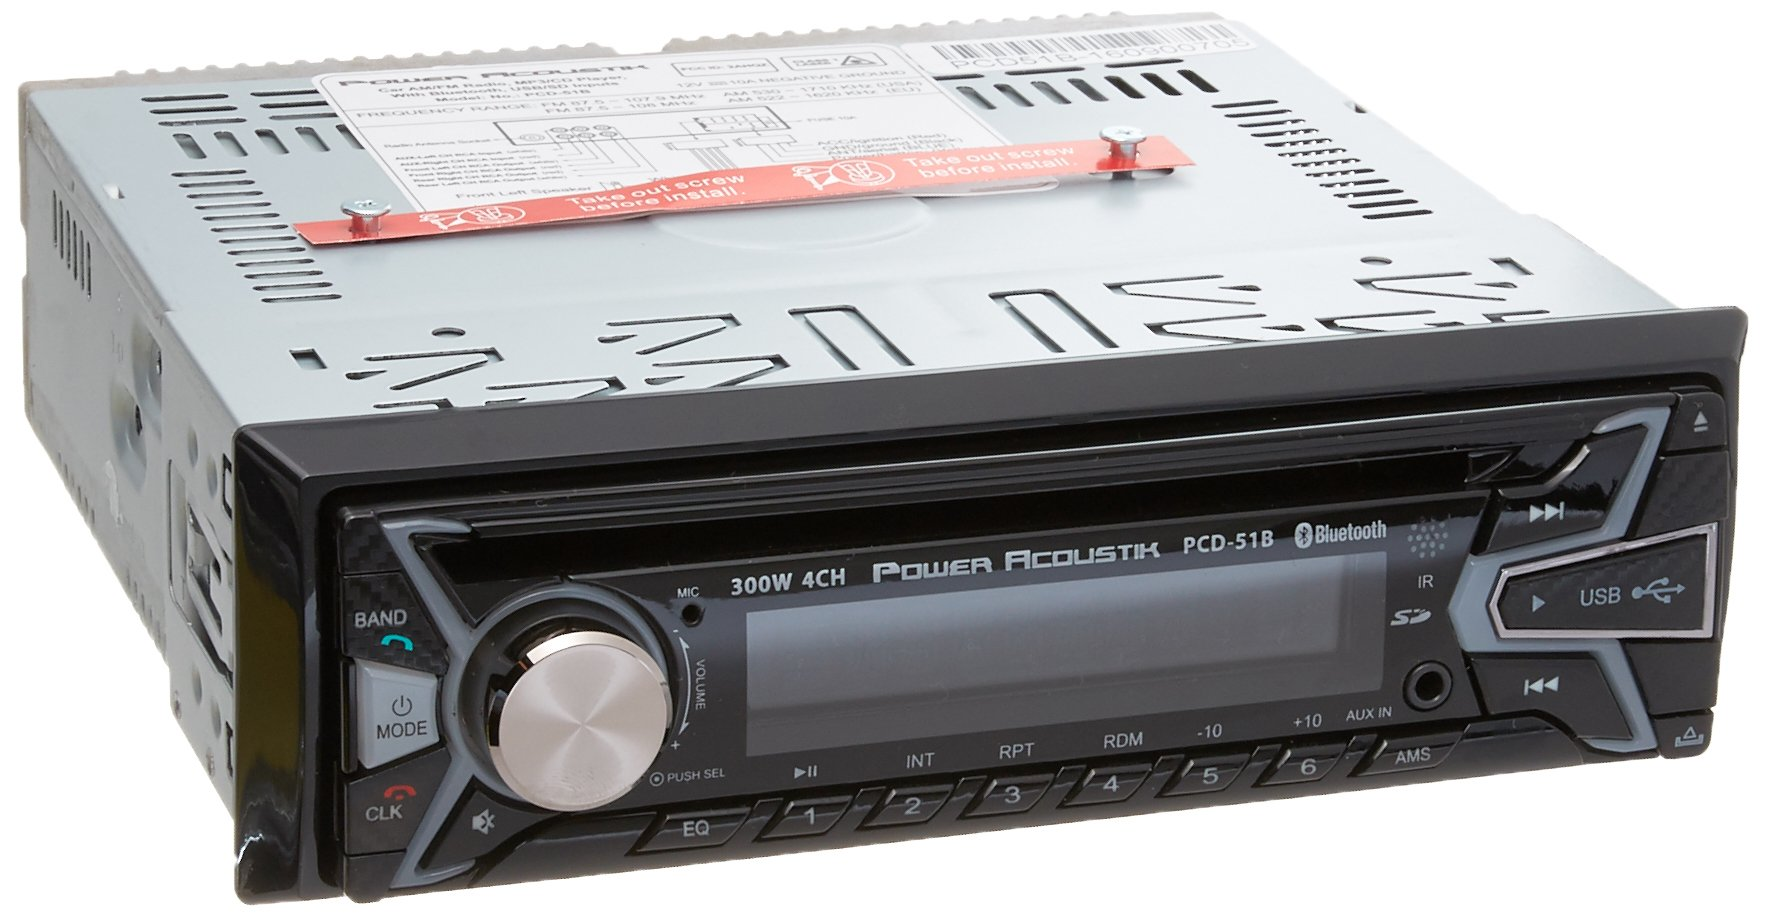 Power Acoustik PCD-51B Single-Din in-Dash Cd/Mp3 AM/FM Receiver with USB Playback (with Bluetooth) by Power Acoustik